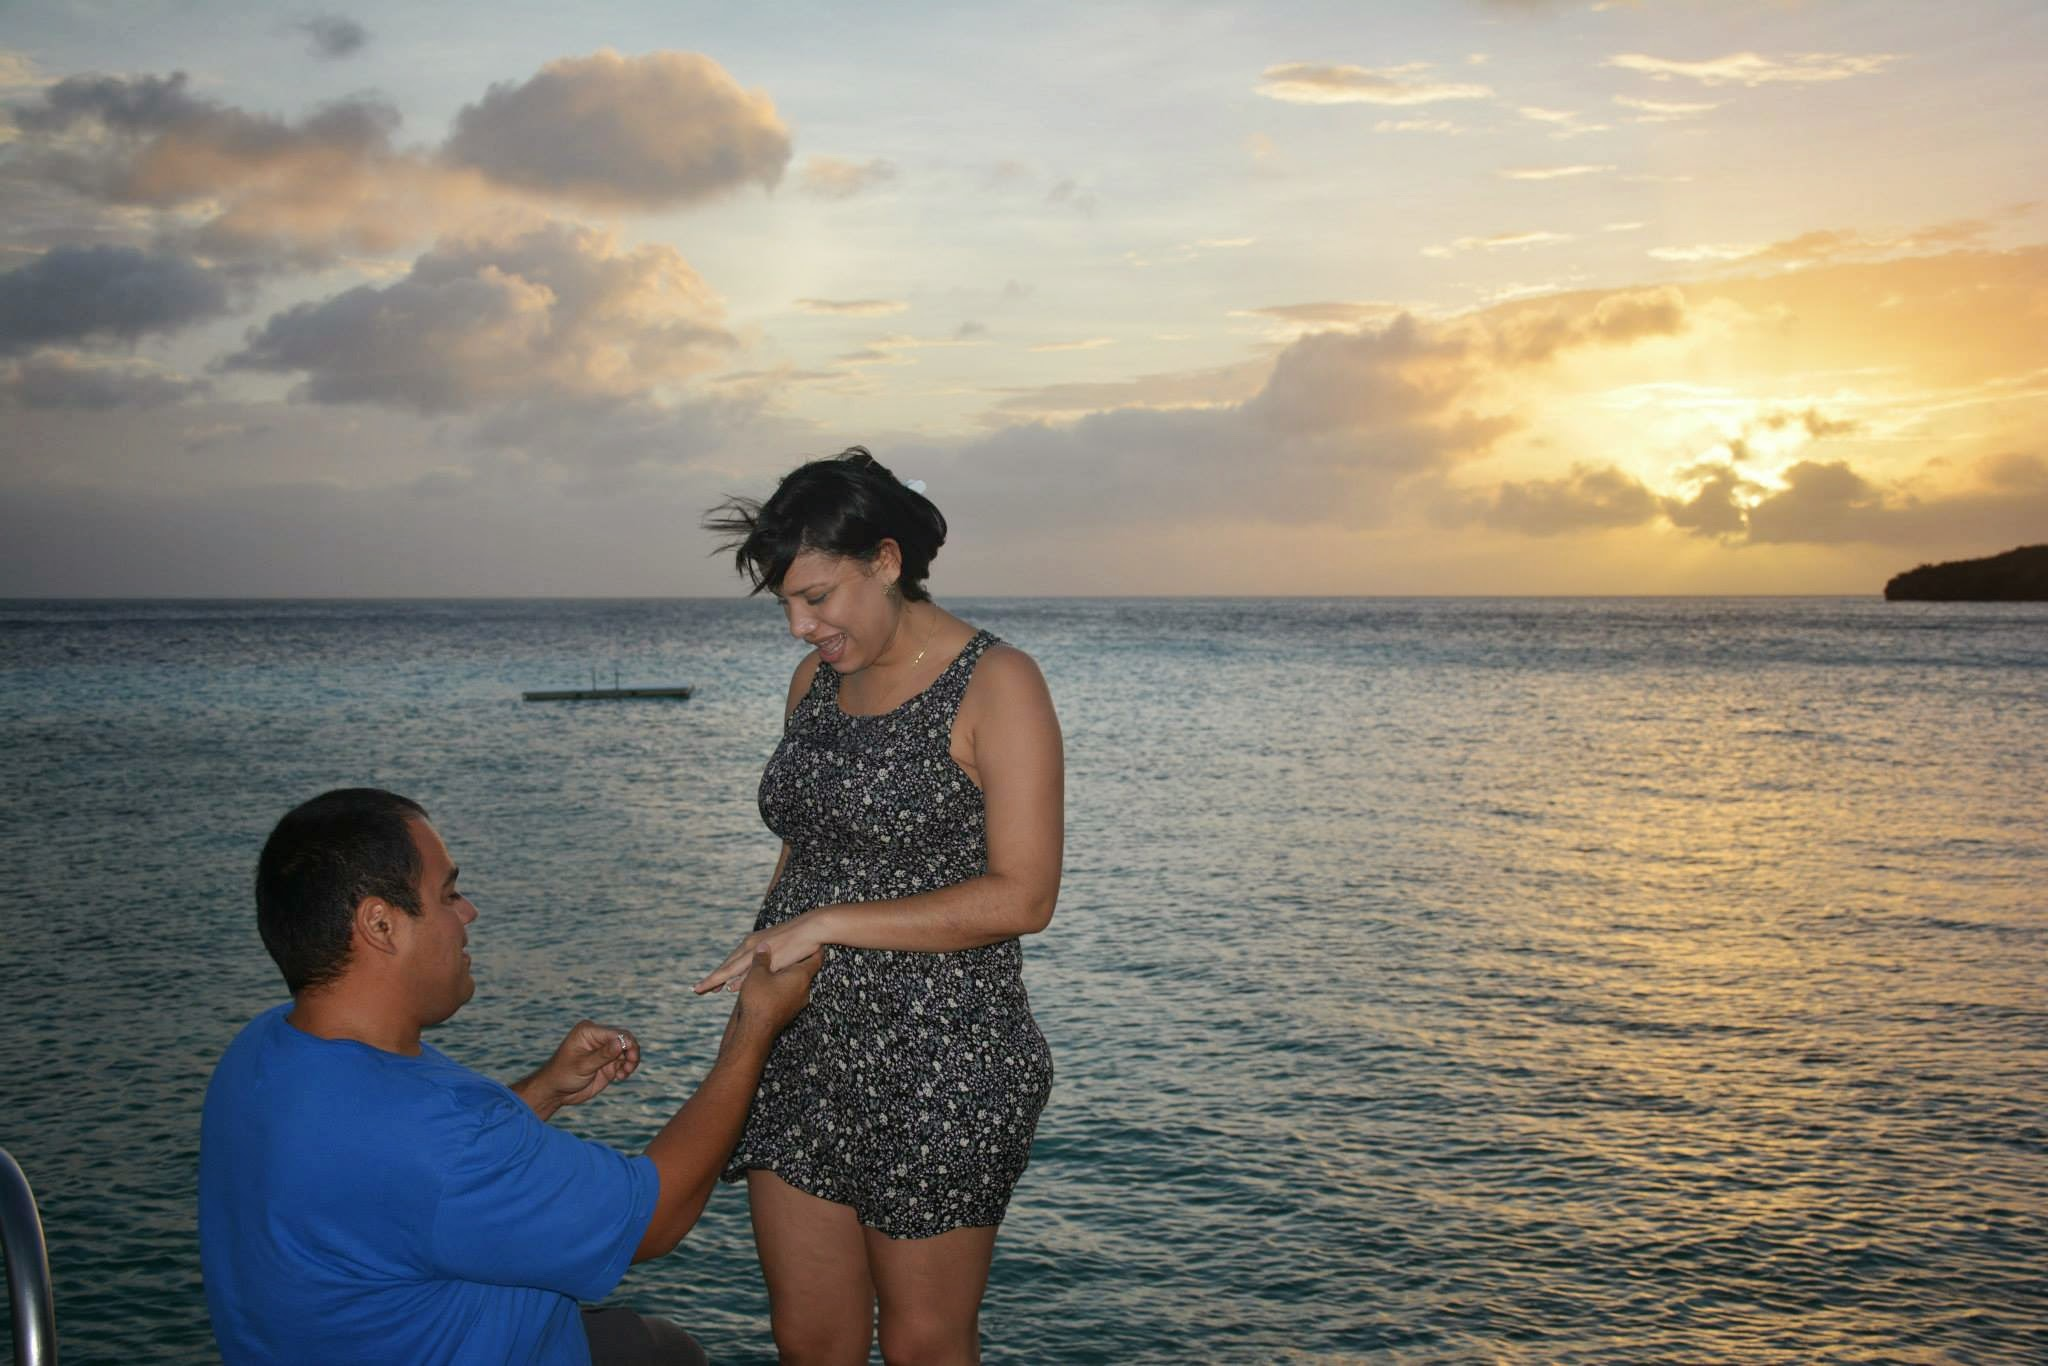 Image 2 of Carlos and Gabby's Proposal on the Island of Curaçao